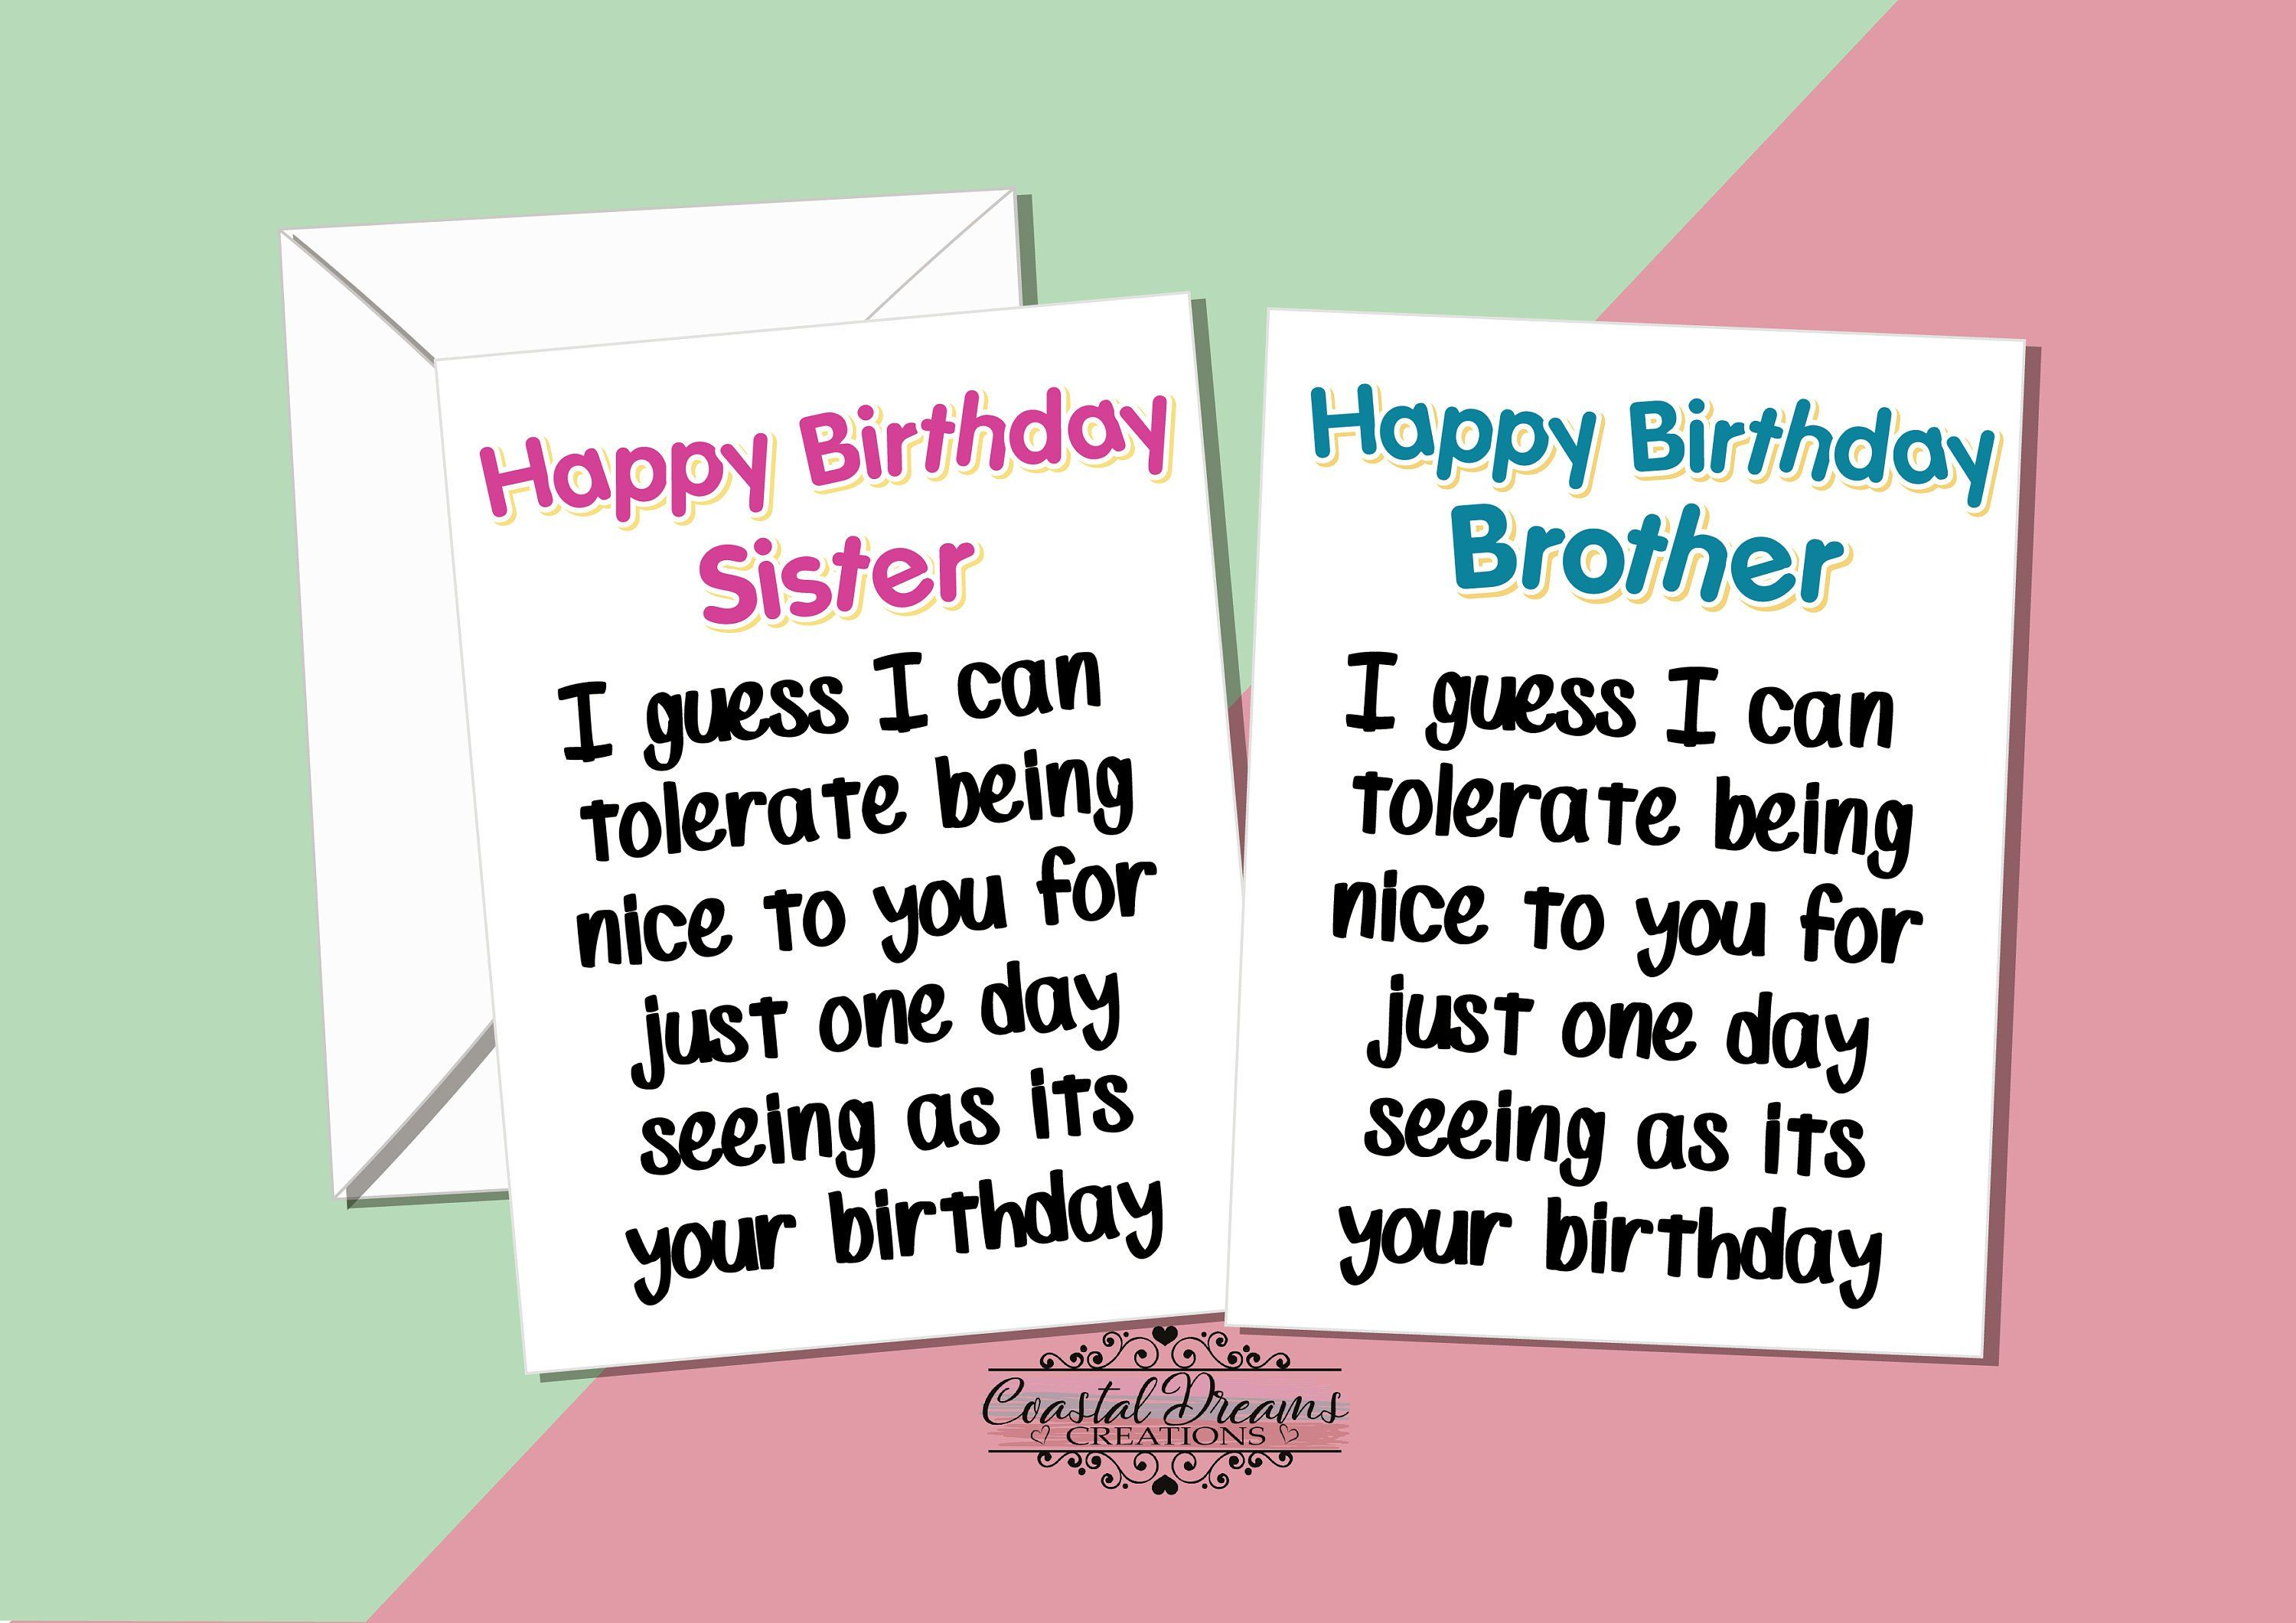 Funny Brother Sister Happy Birthday Card I Ll Tolerate Being Nice To You For One Day As It S Your Birthday Little Big Sibling Rivalry Happy Birthday Little Brother Happy Birthday Cards